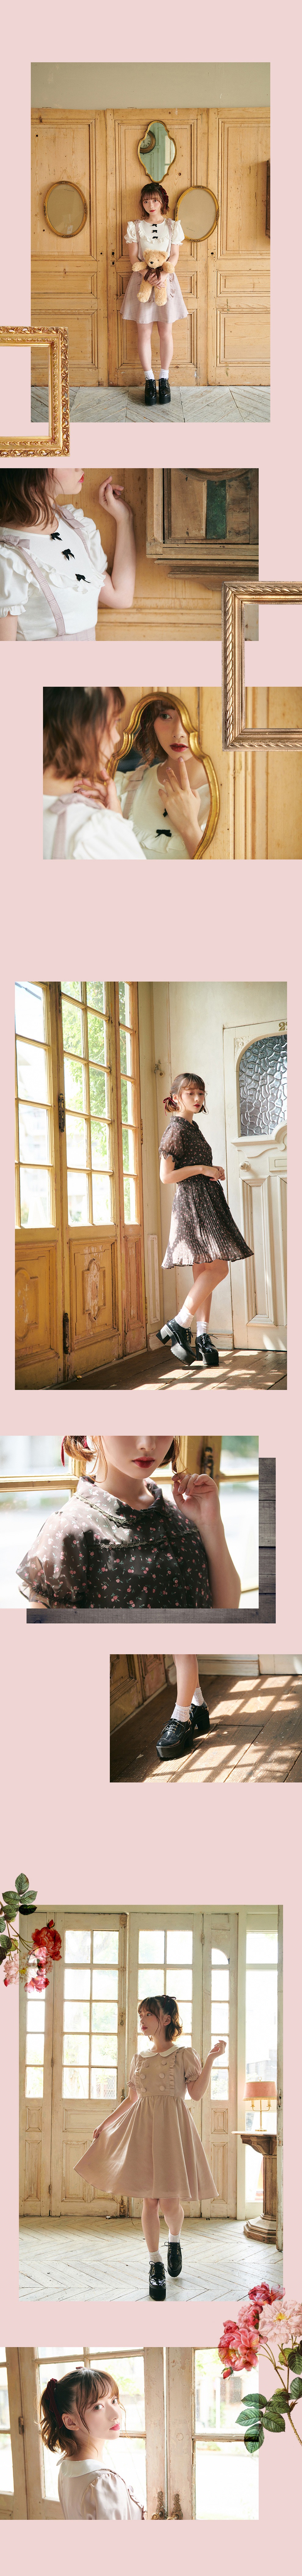 Ank Rouge 19 Autumn Girly Collection VOL.1